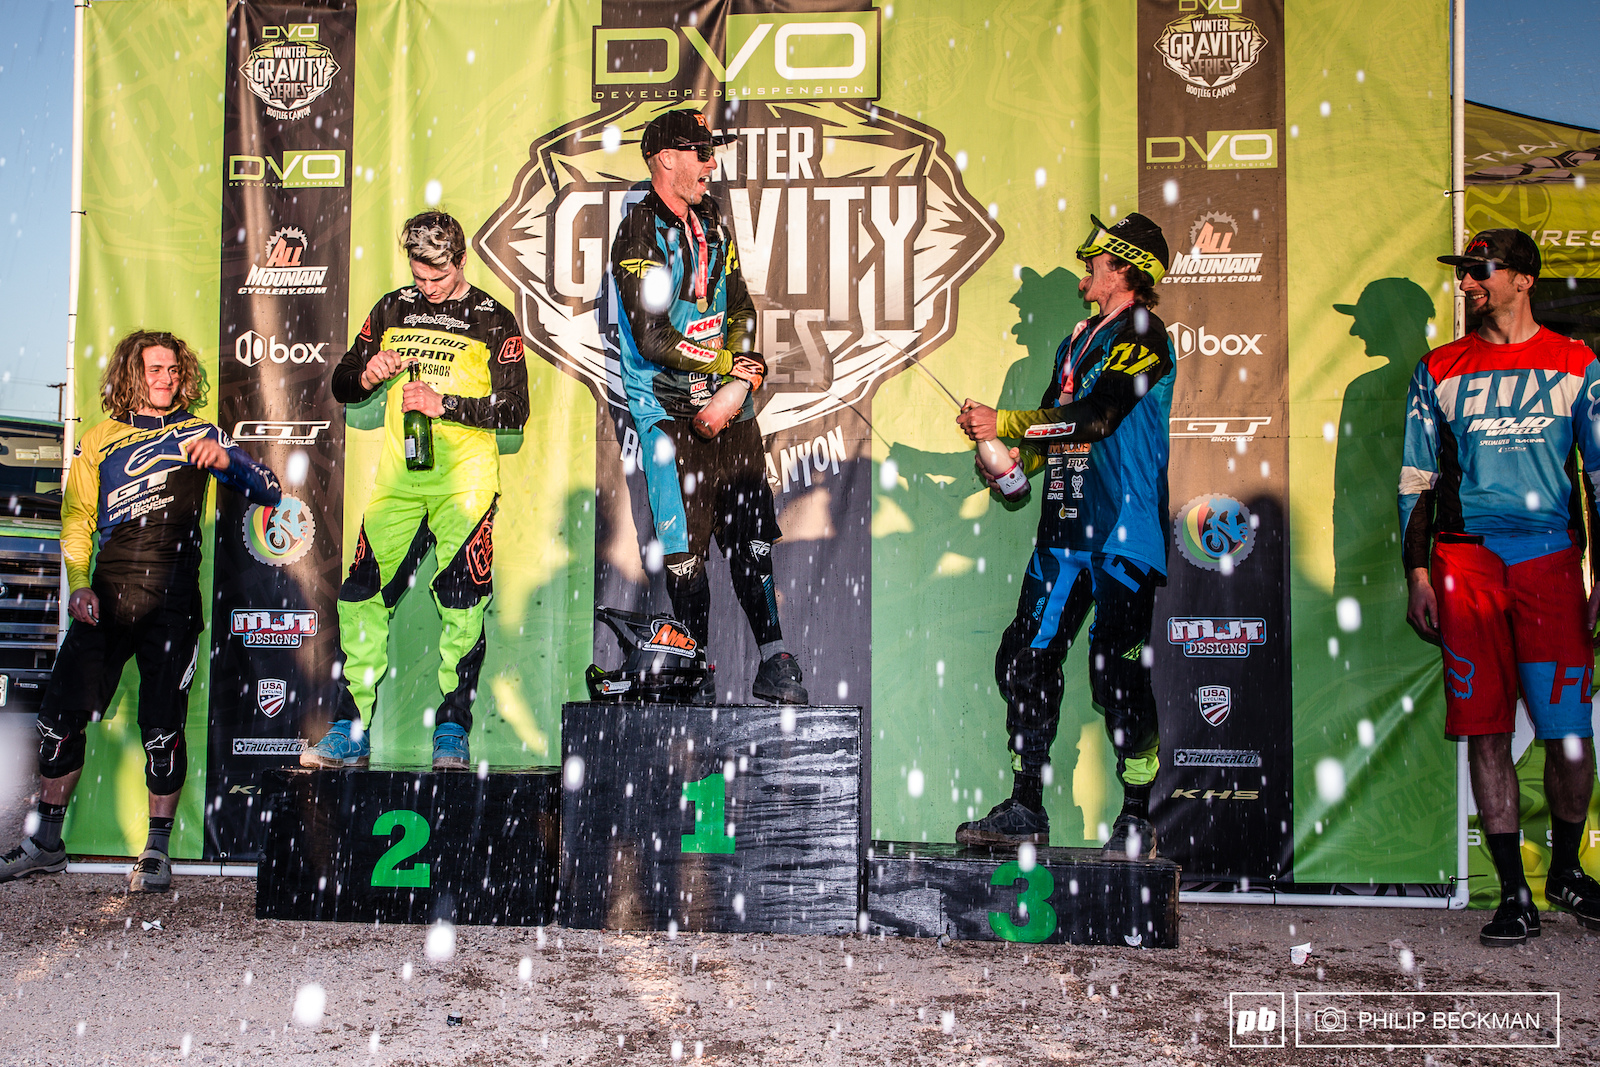 While Demetri Triantafillou LakeTown Bicycles and Chris Higgerson Mojo Wheels Foxhead look on KHS teammates Logan Binggeli and Bruce Klein engage in champagne battle. Second place finisher Mitch Ropelato Santa Cruz SRAM TLD was a little late to the party. Your Pro Men s DH podium.